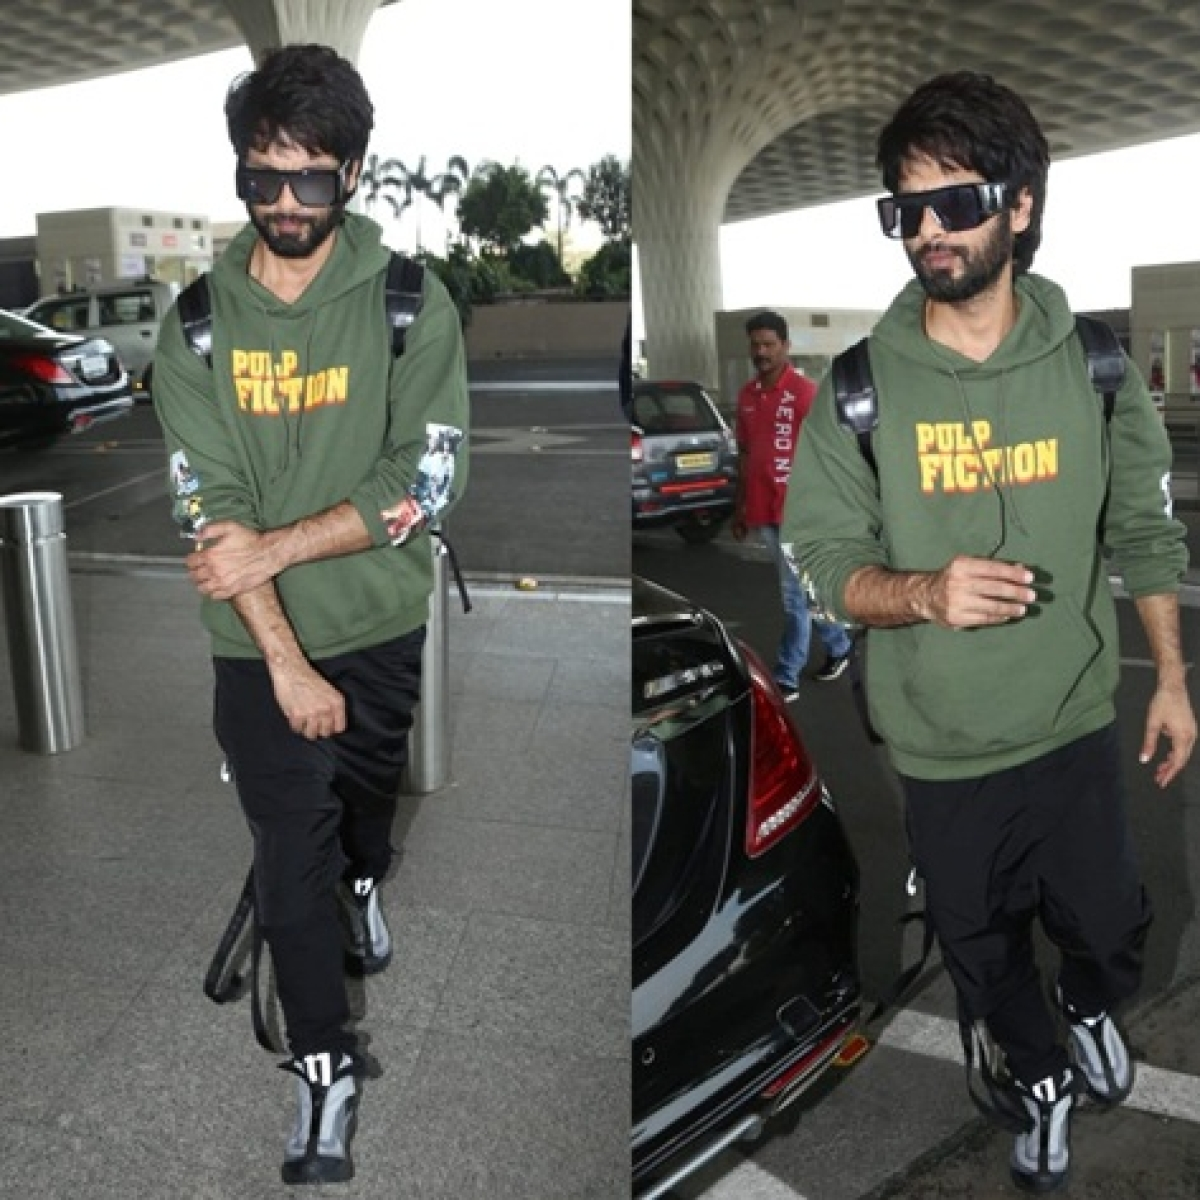 Say that again: Shahid Kapoor's Rs 5k hoodie is a must-have for every Pulp Fiction fan in their winter wardrobe